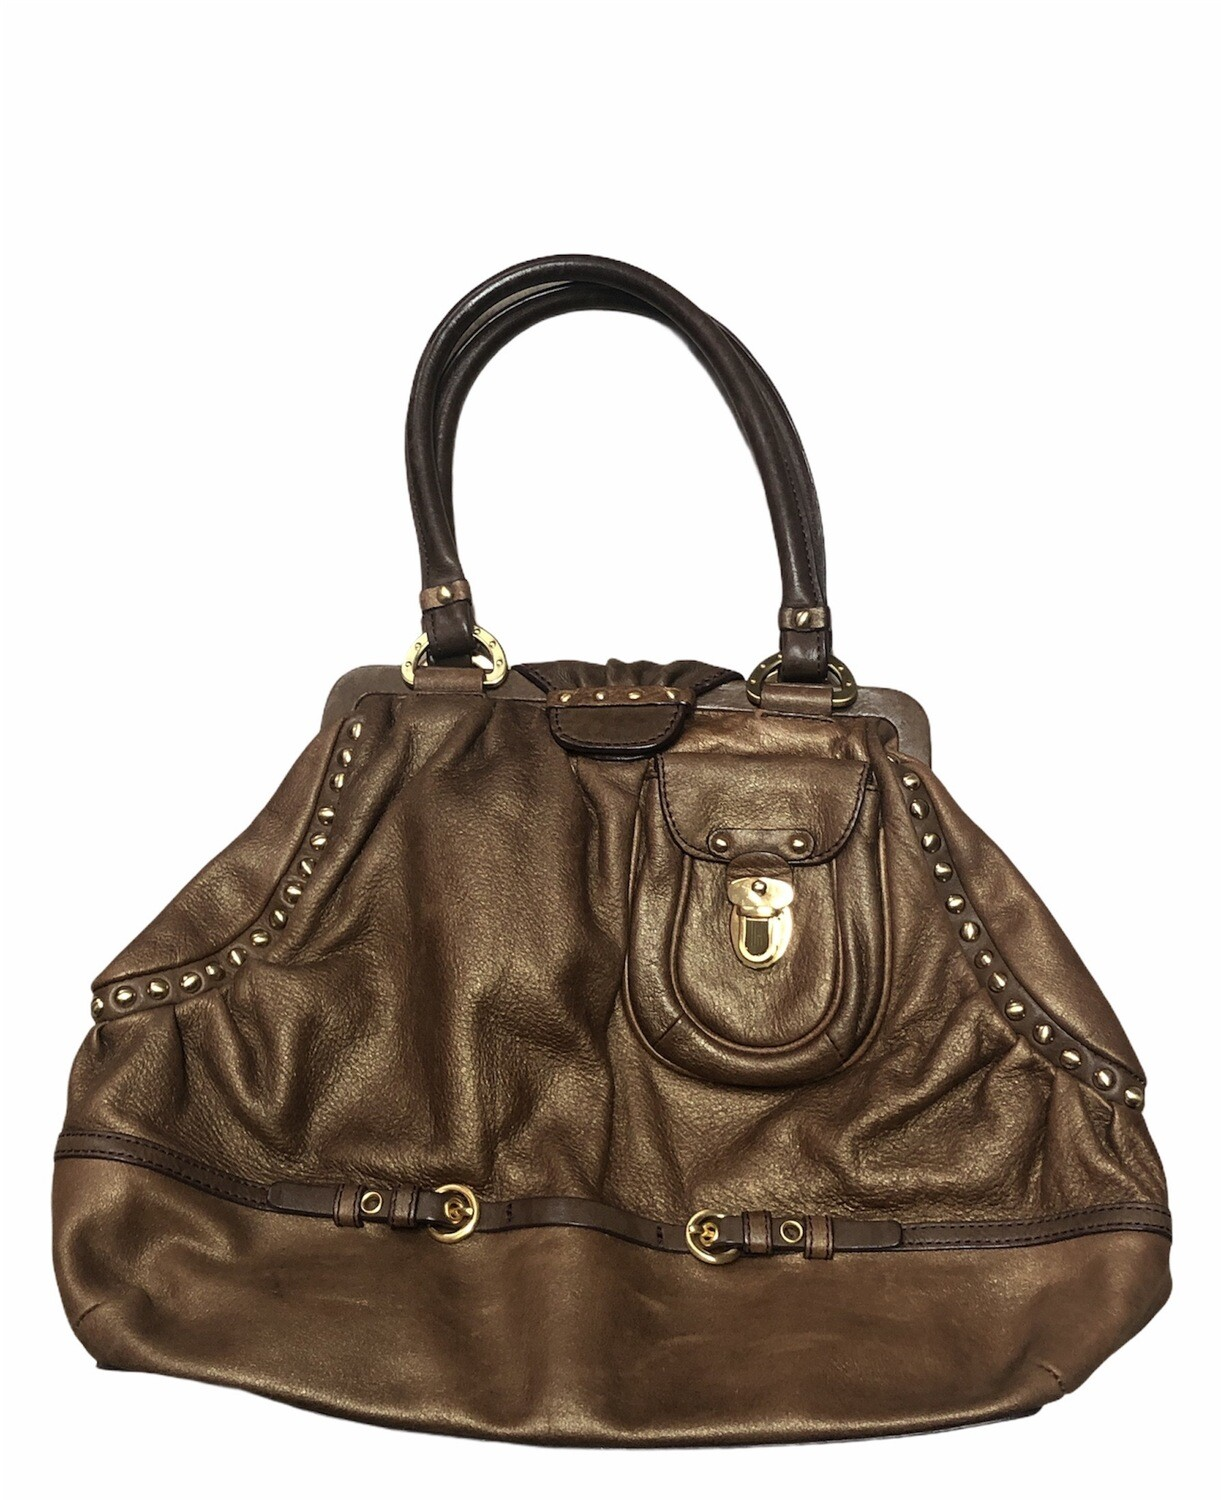 ELLEN TRACY Metallic Caramel Brown Leather Satchel with Gold Rivets